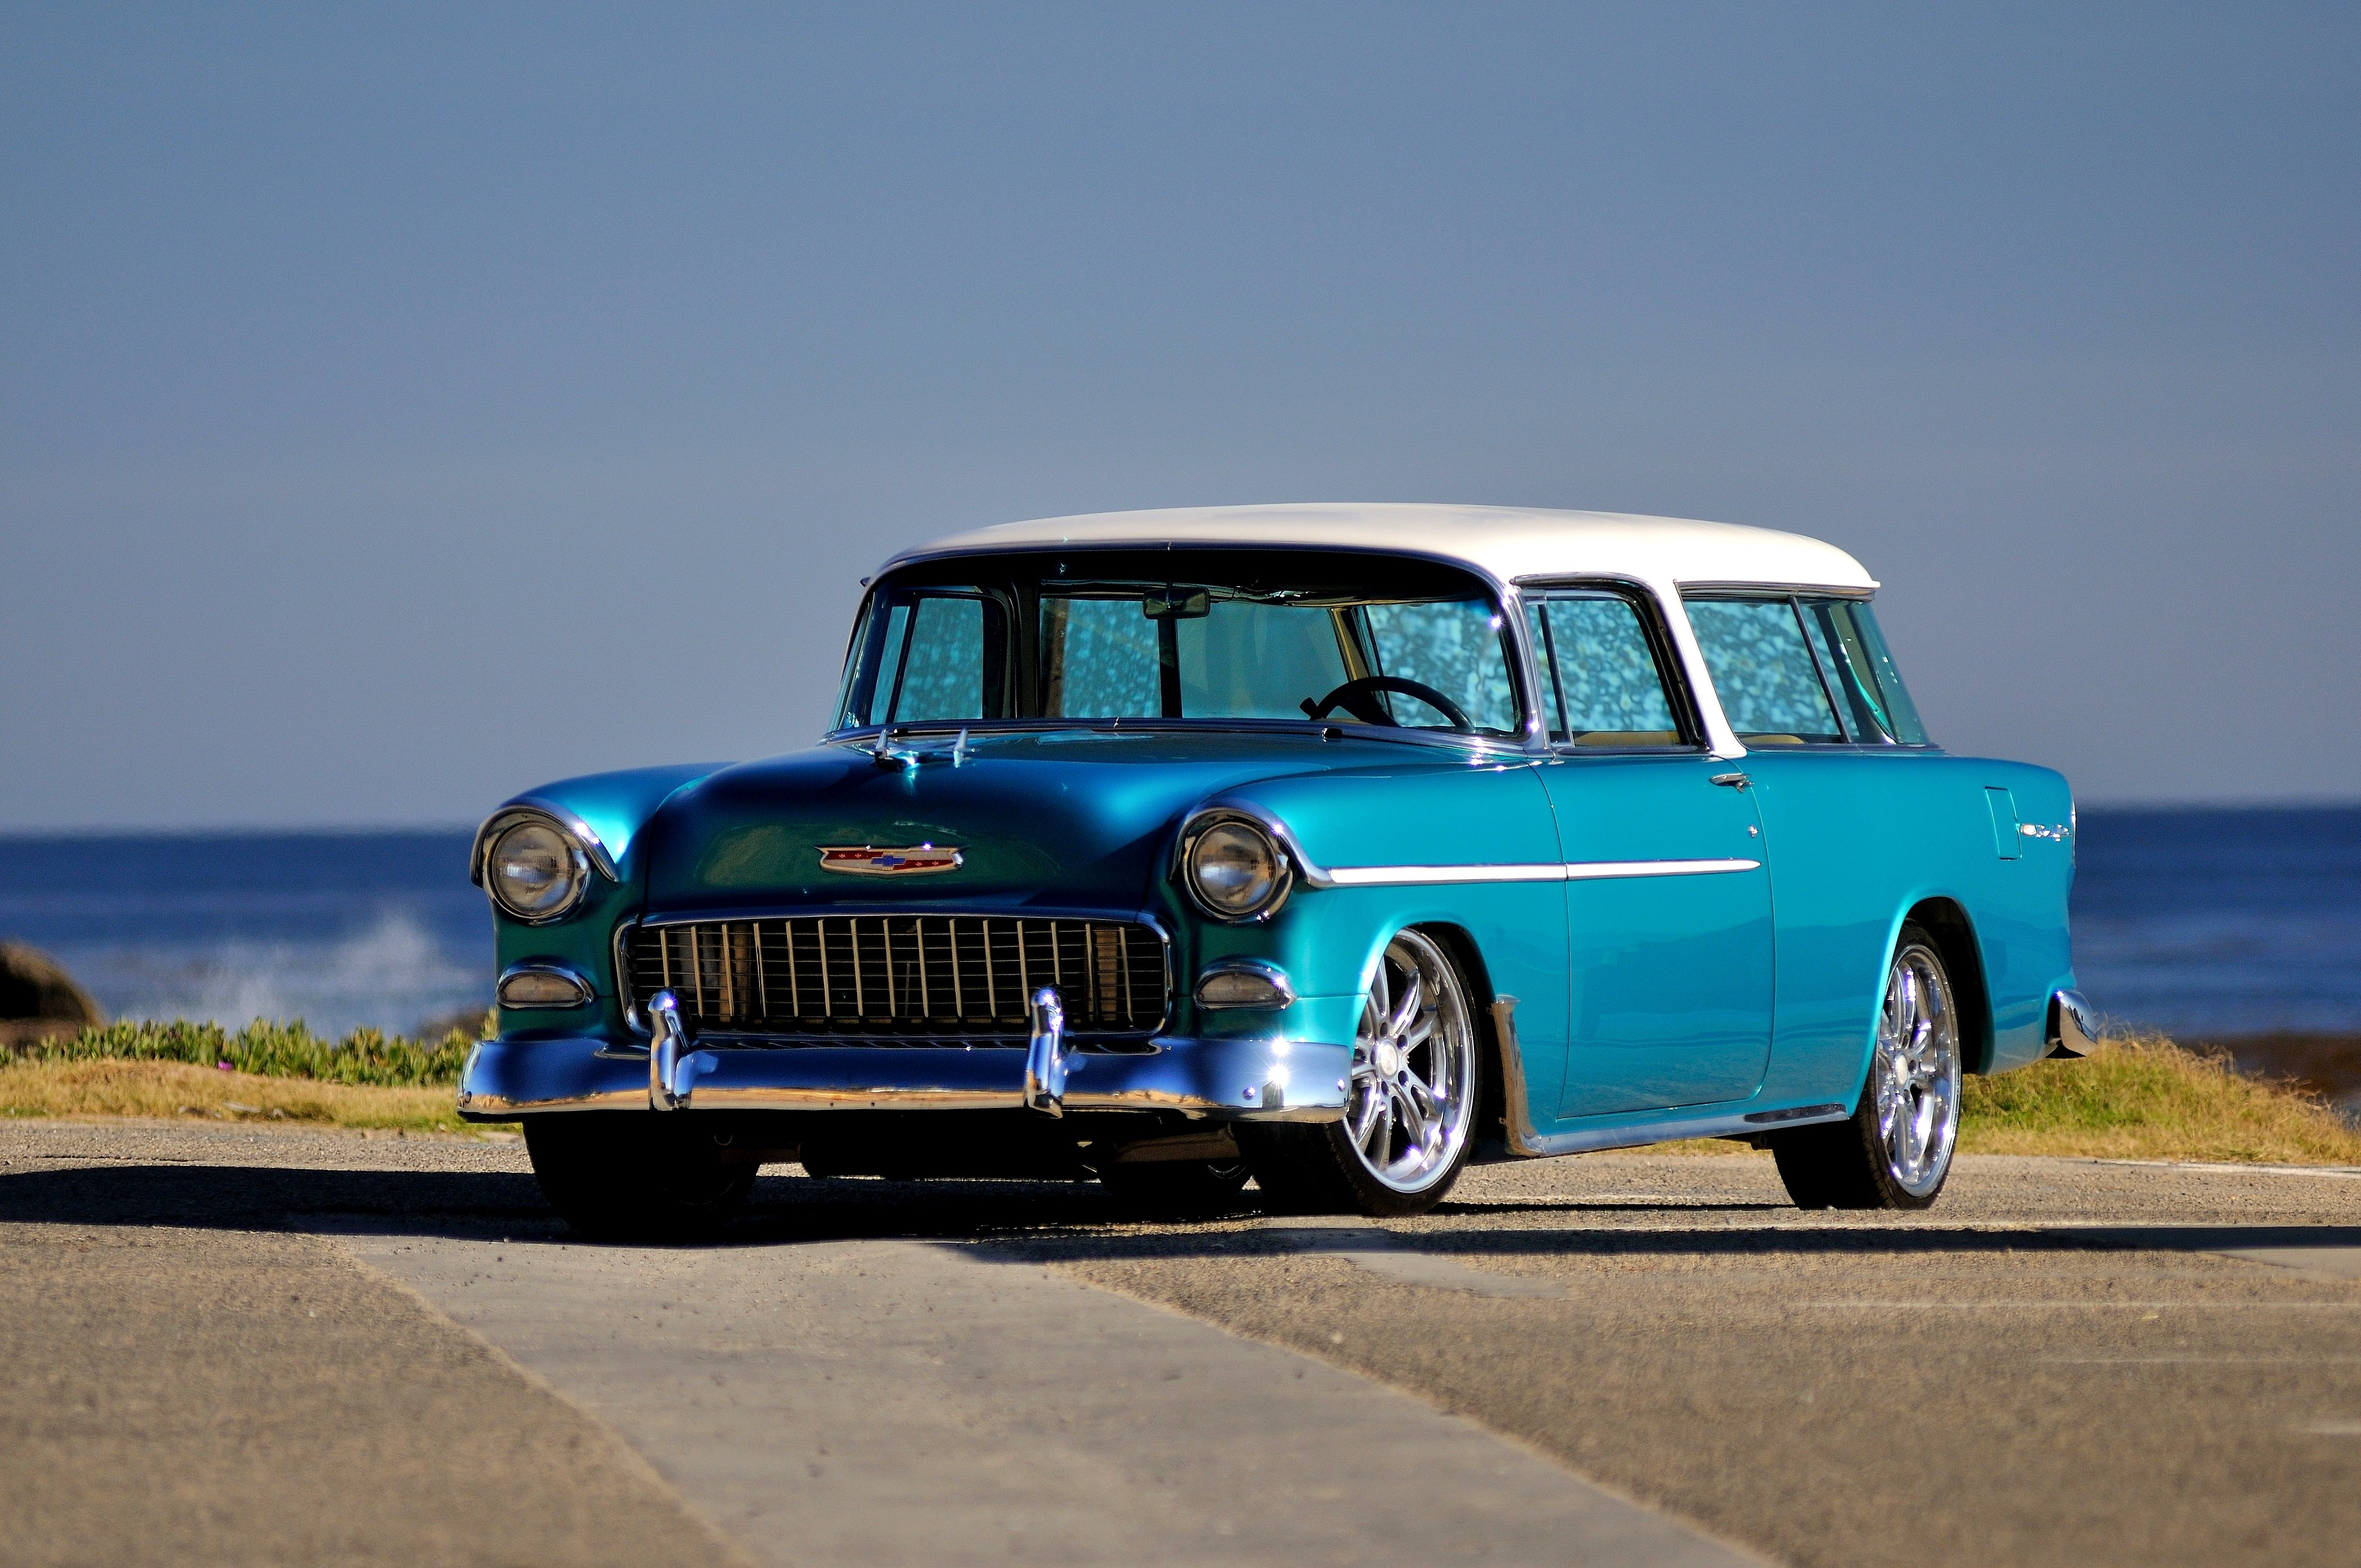 4200x2790 - Chevrolet Nomad Wallpapers 23